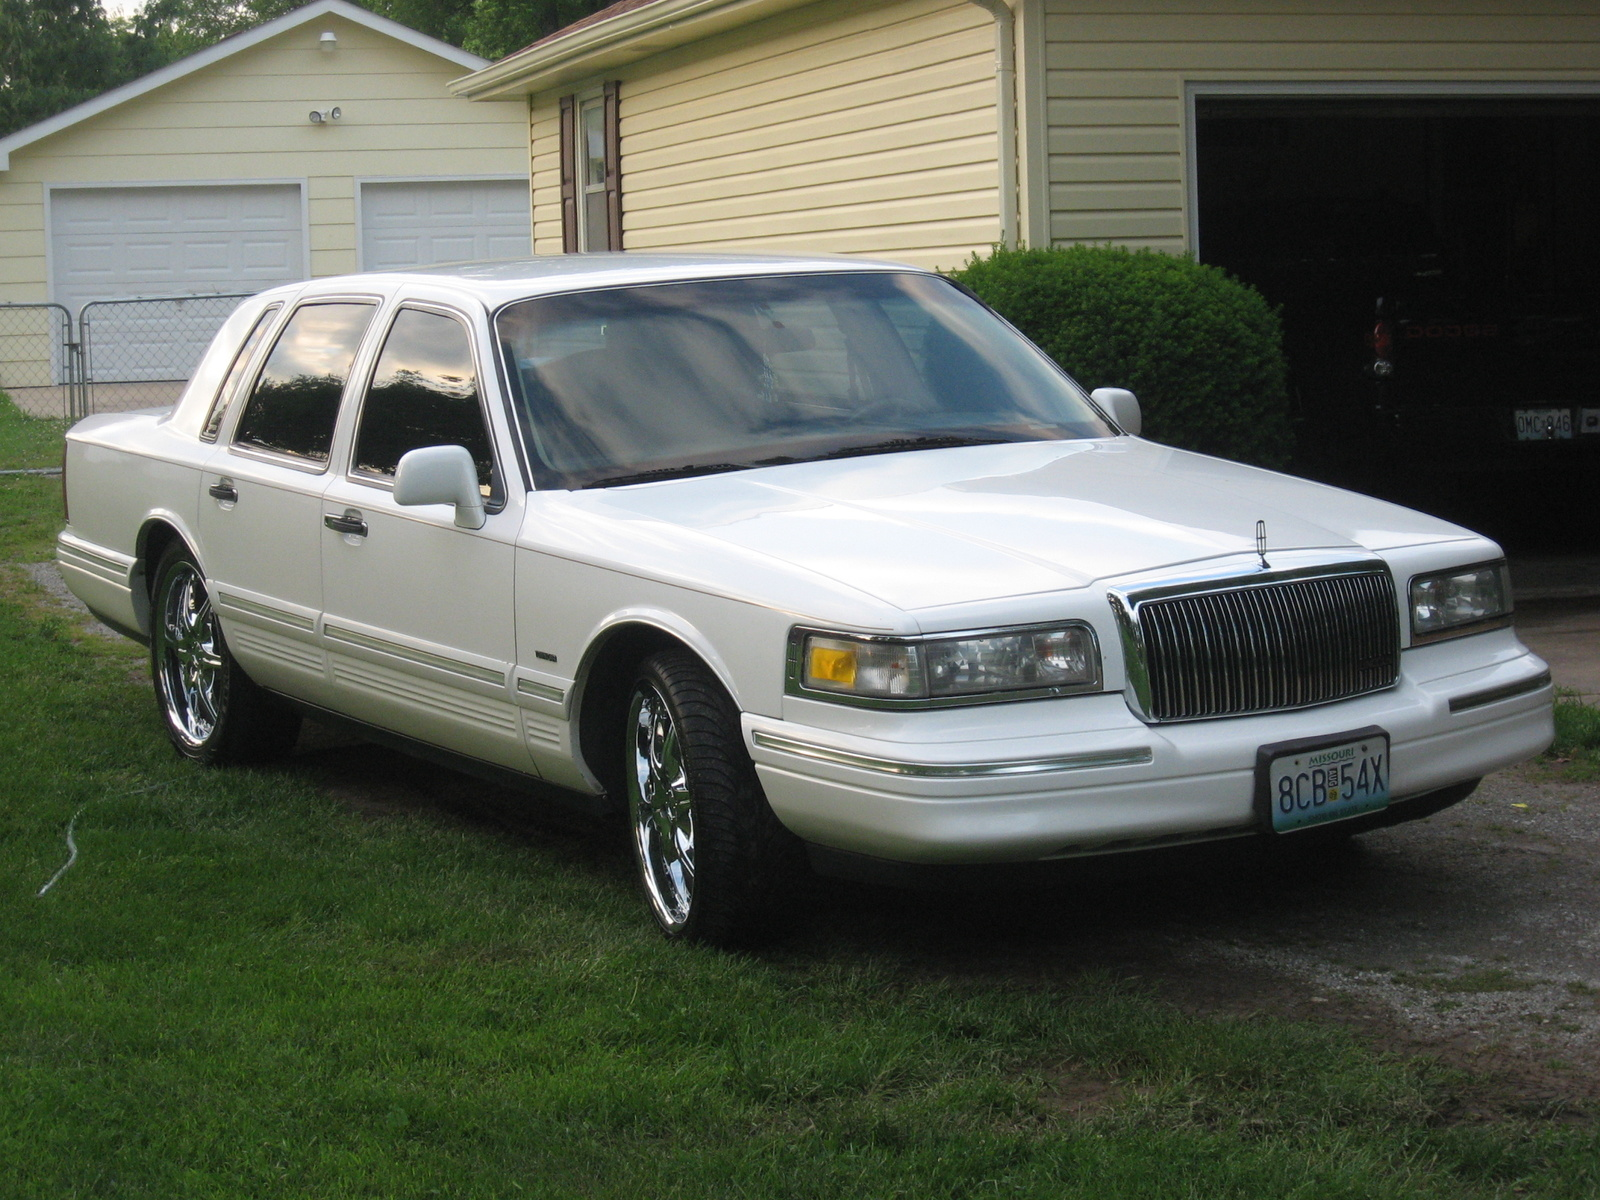 1996 lincoln town car information and photos zombiedrive. Black Bedroom Furniture Sets. Home Design Ideas